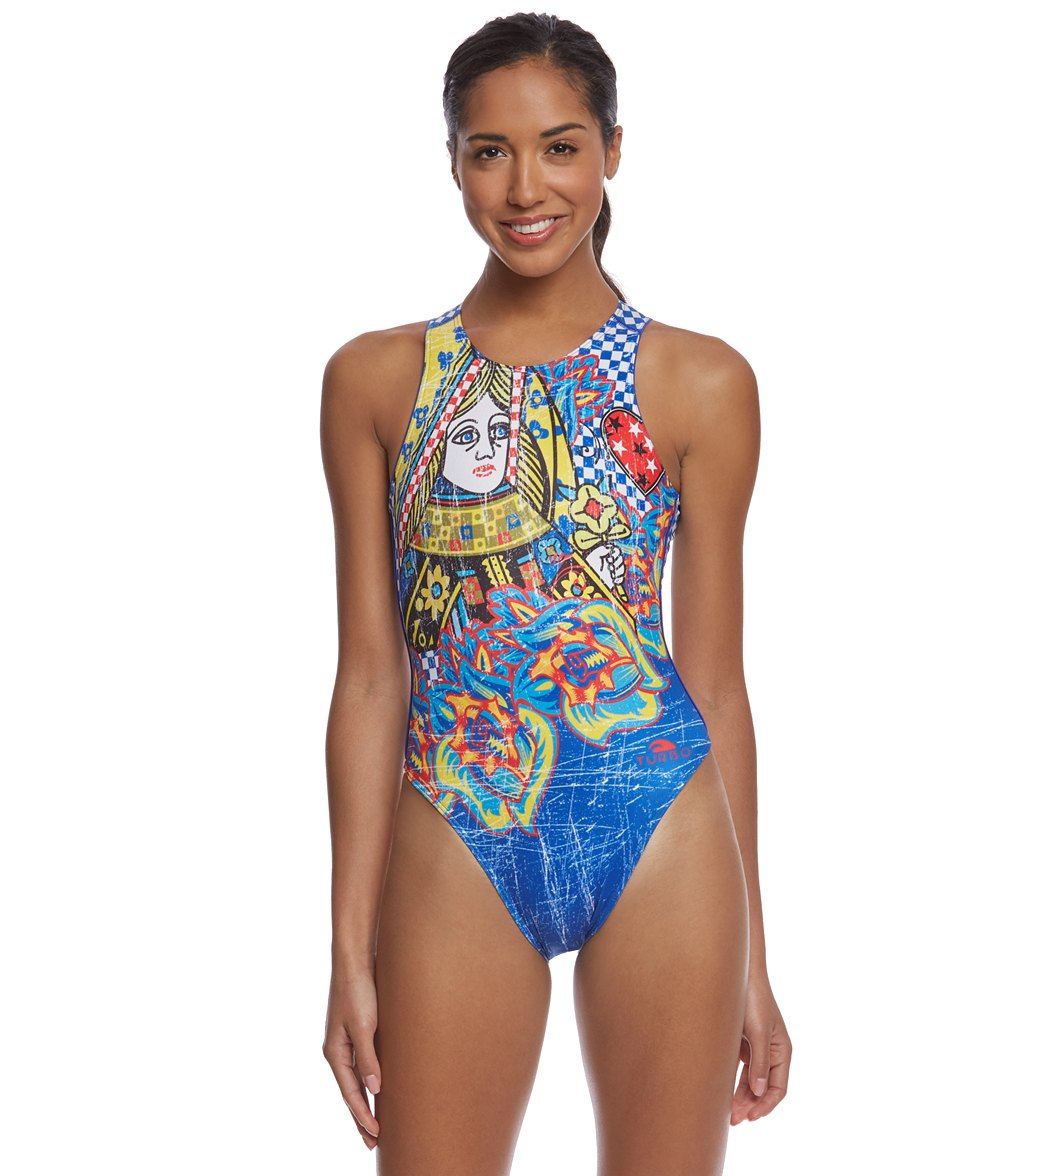 641d5fdfabe Turbo Queen Heart Vintage Water Polo Suit